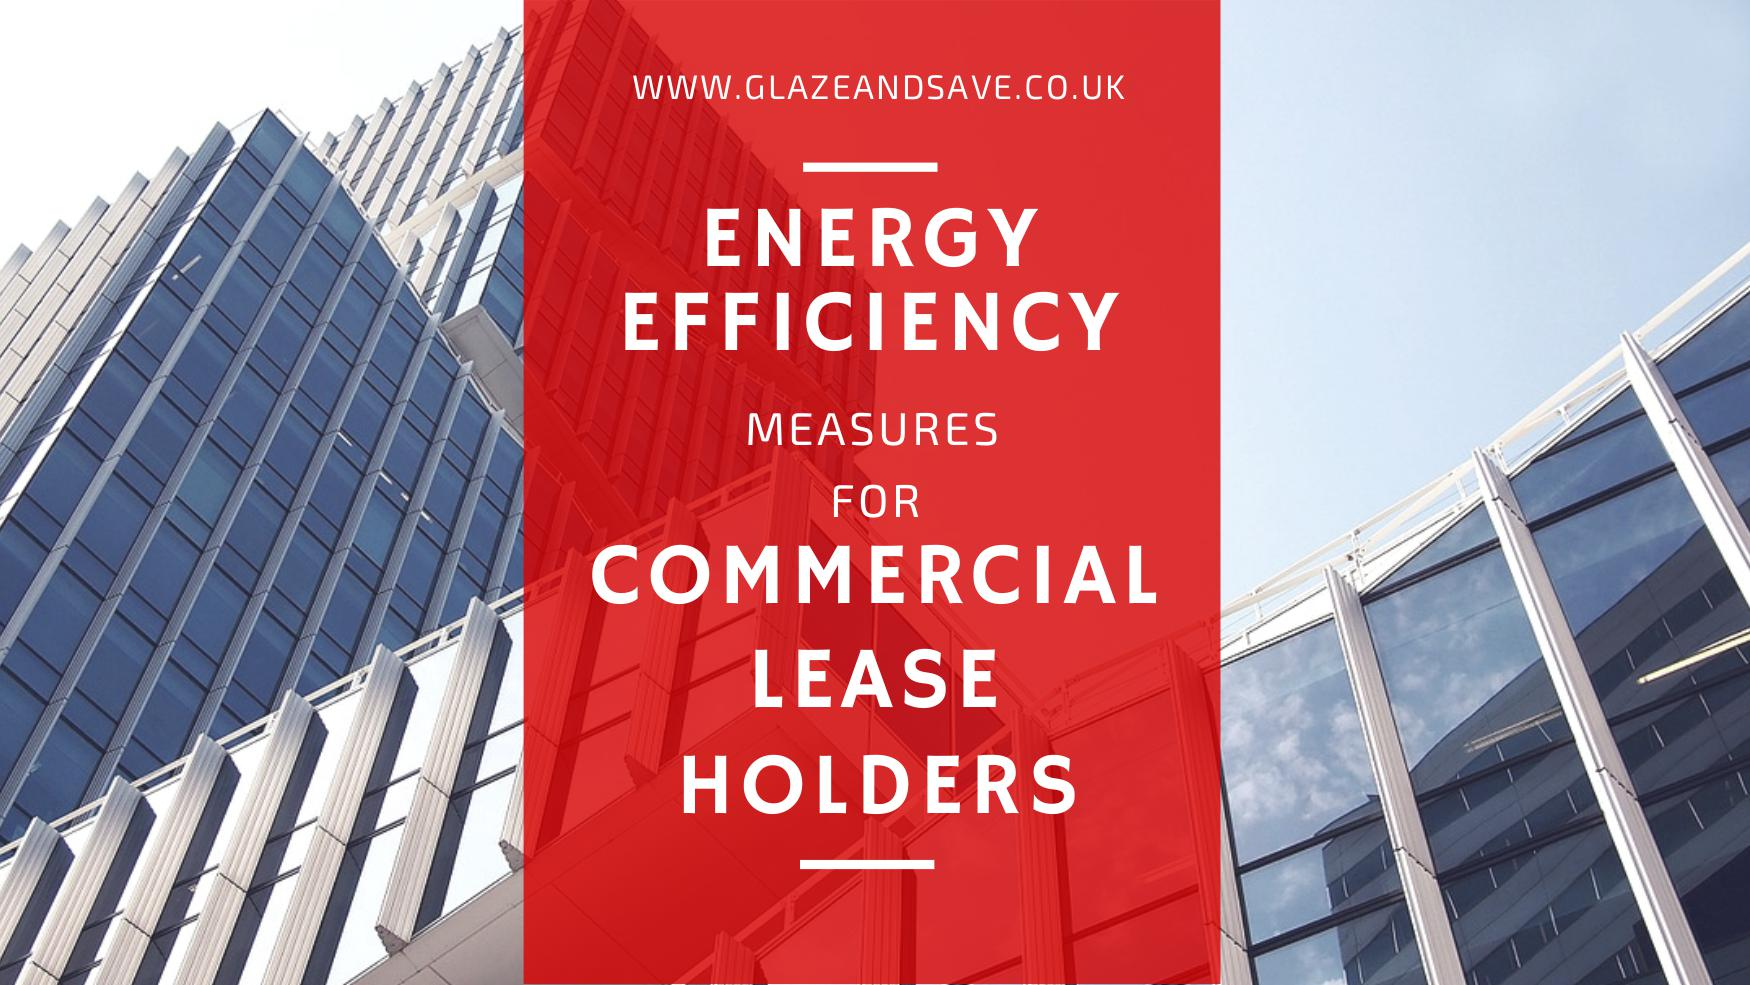 Energy efficiency measures for commercial leaseholders by Glaze & Save, bespoke magnetic secondary glazing and draught proofing.